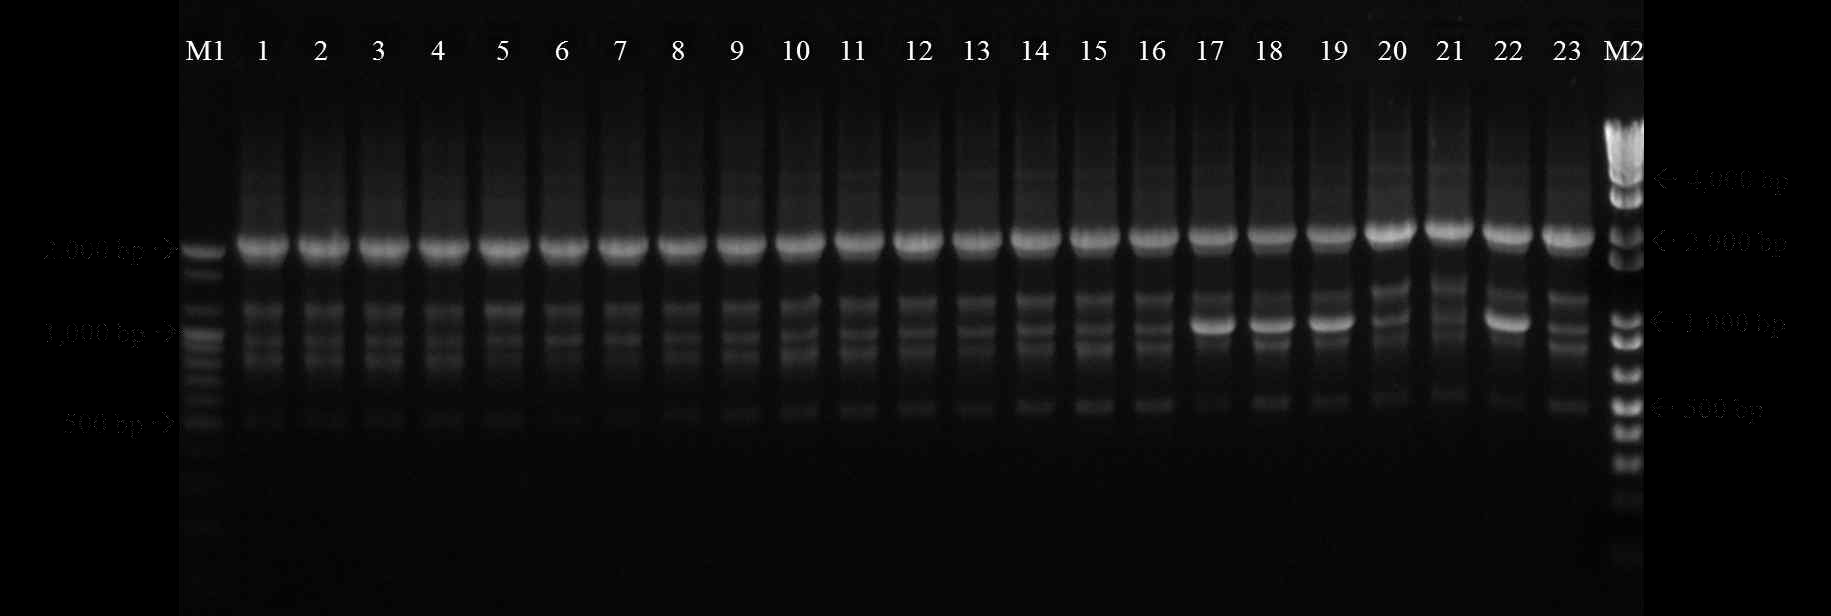 Genotyping of S. iniae by rep-PCR profile